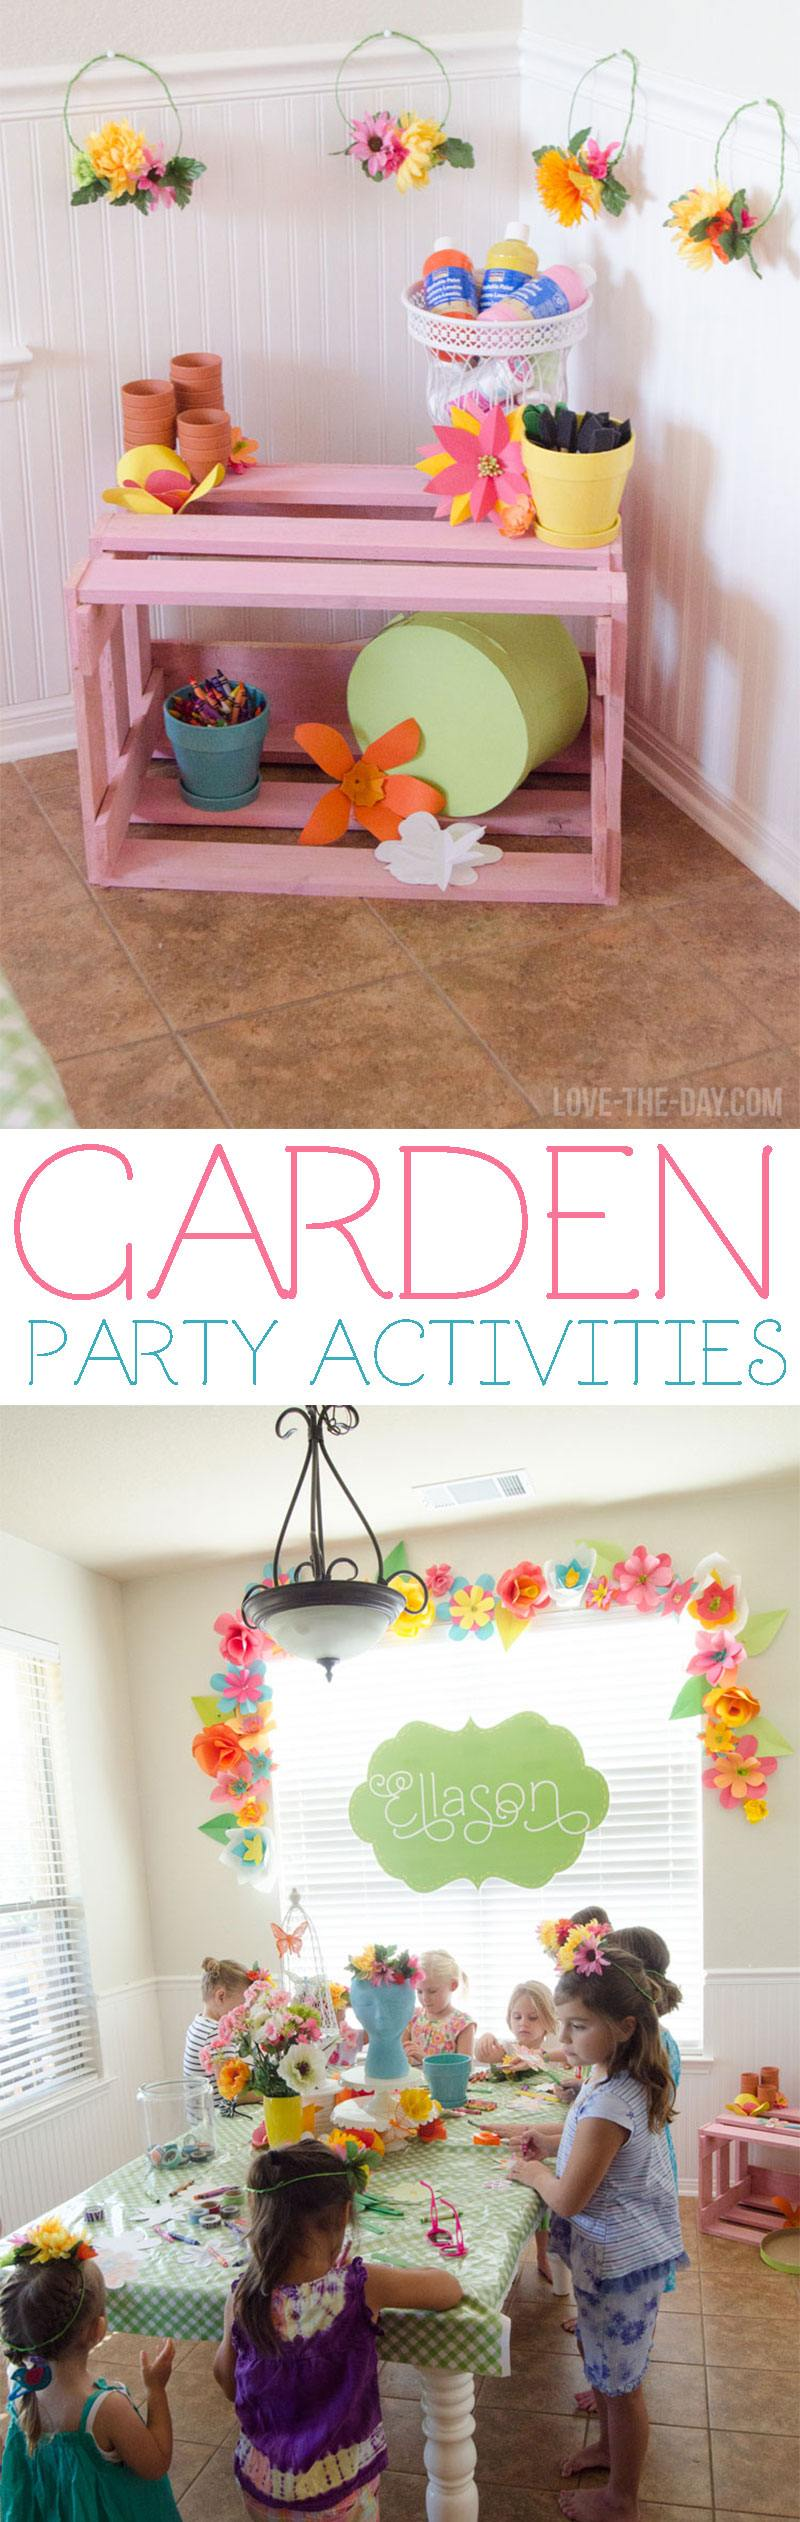 Garden Party Ideas by Lindi Haws of Love The Day